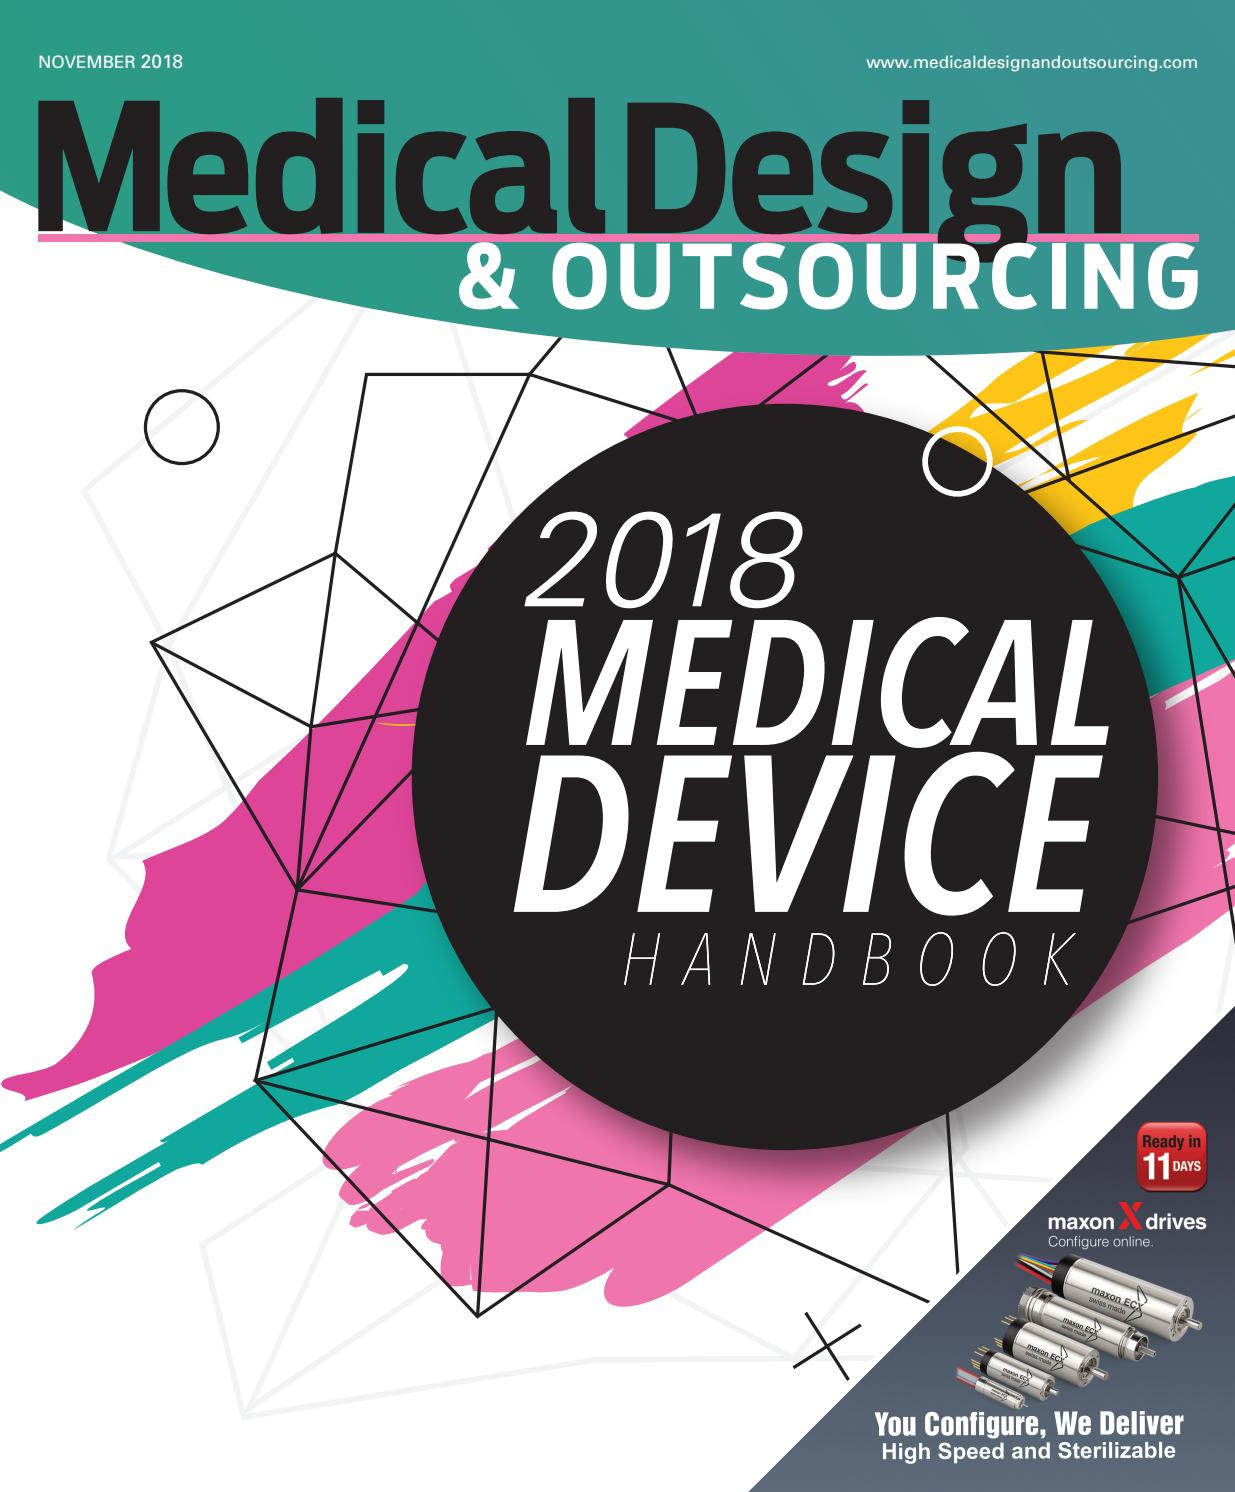 Medical Design & Outsourcing — NOVEMBER 2018 by WTWH Media